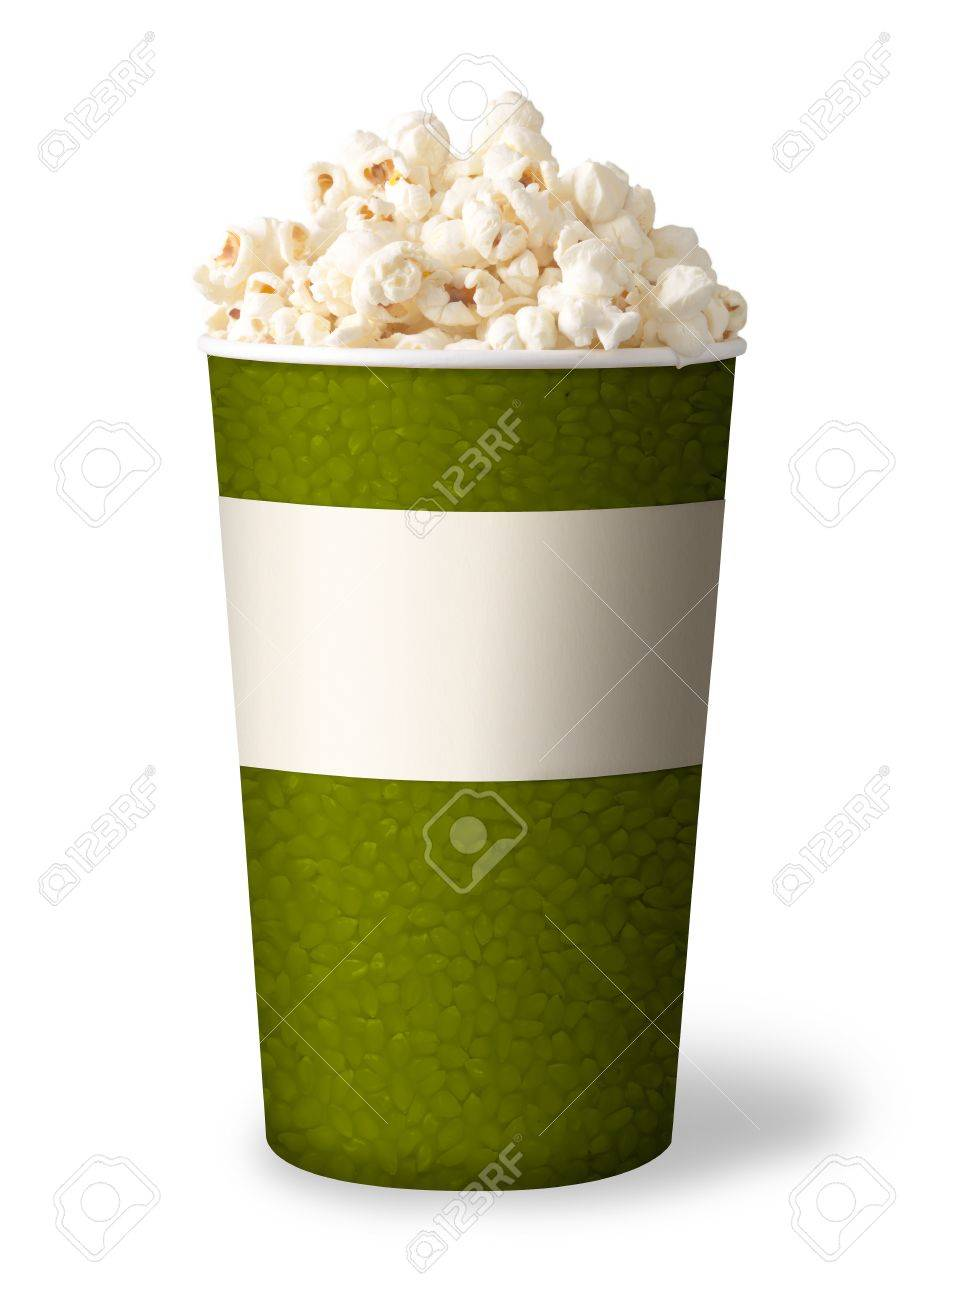 bucket of popcorn isolated on white background  green color Stock Photo - 12873602